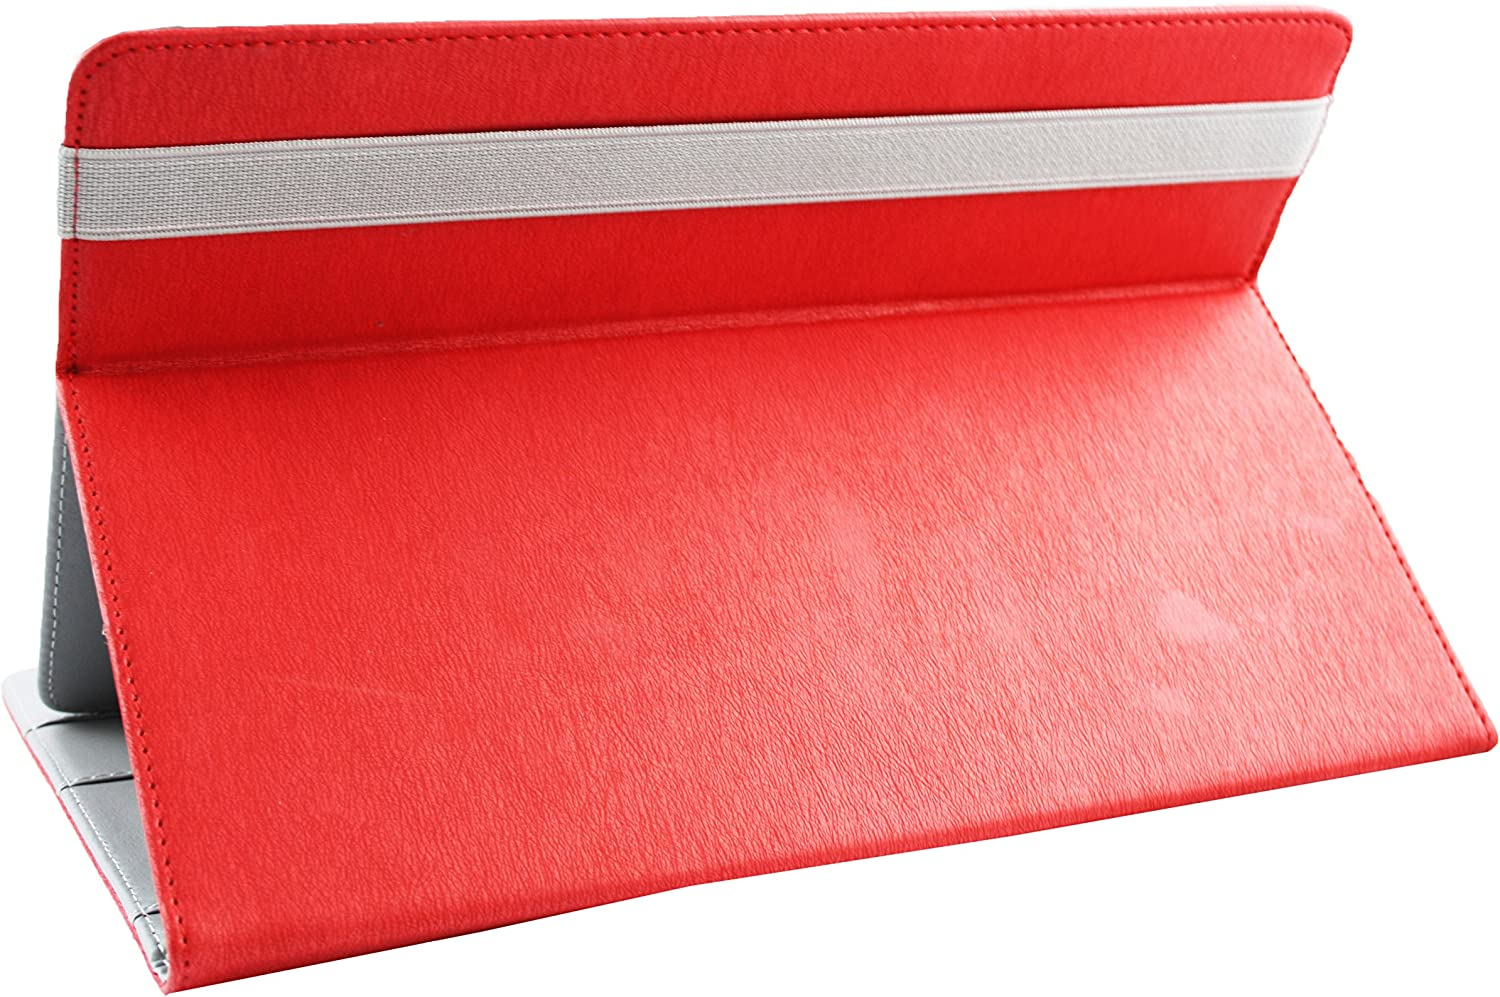 Red Premium PU Leather Multi Angle Executive Folio Wallet Case Cover Grey Interior With Card Slots Emartbuy/® Vodafone Tab Prime 6 Tablet 9.6 Inch Universal 9-10 Inch Red Stylus